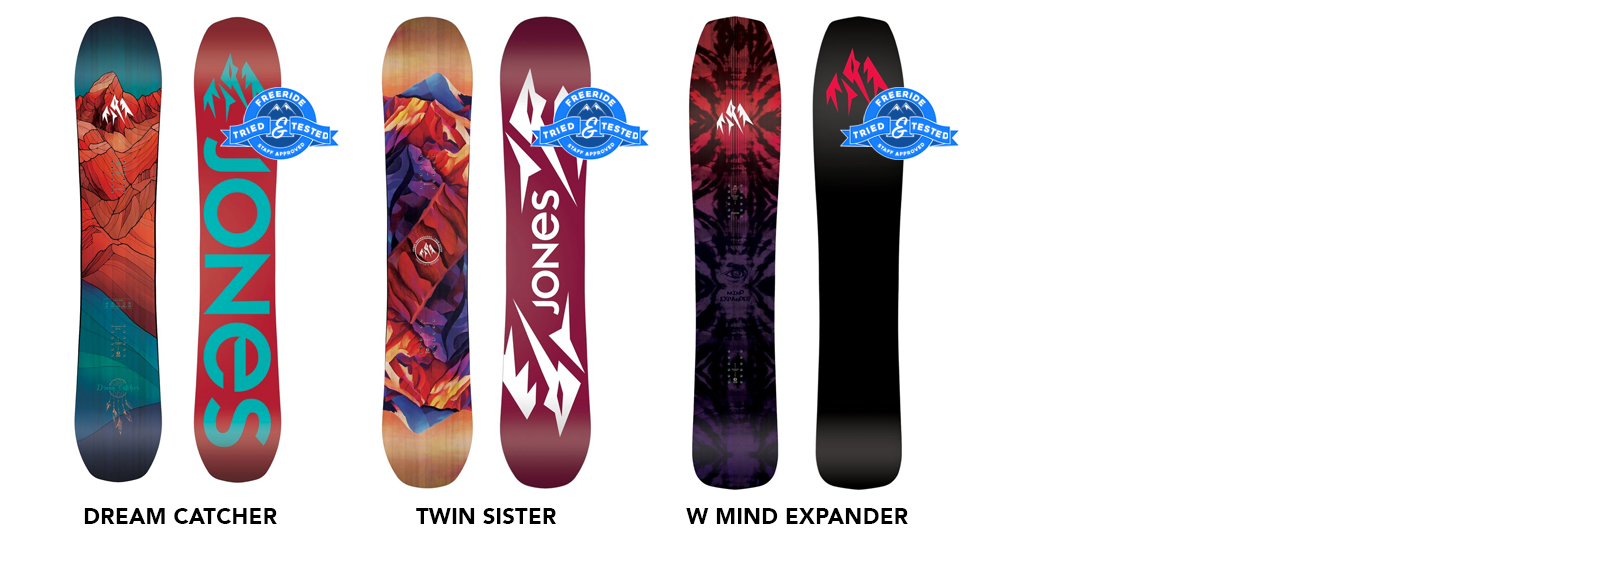 Buy 2019 Jones Women's Snowboards Online in Canada - Freeride Boardshop